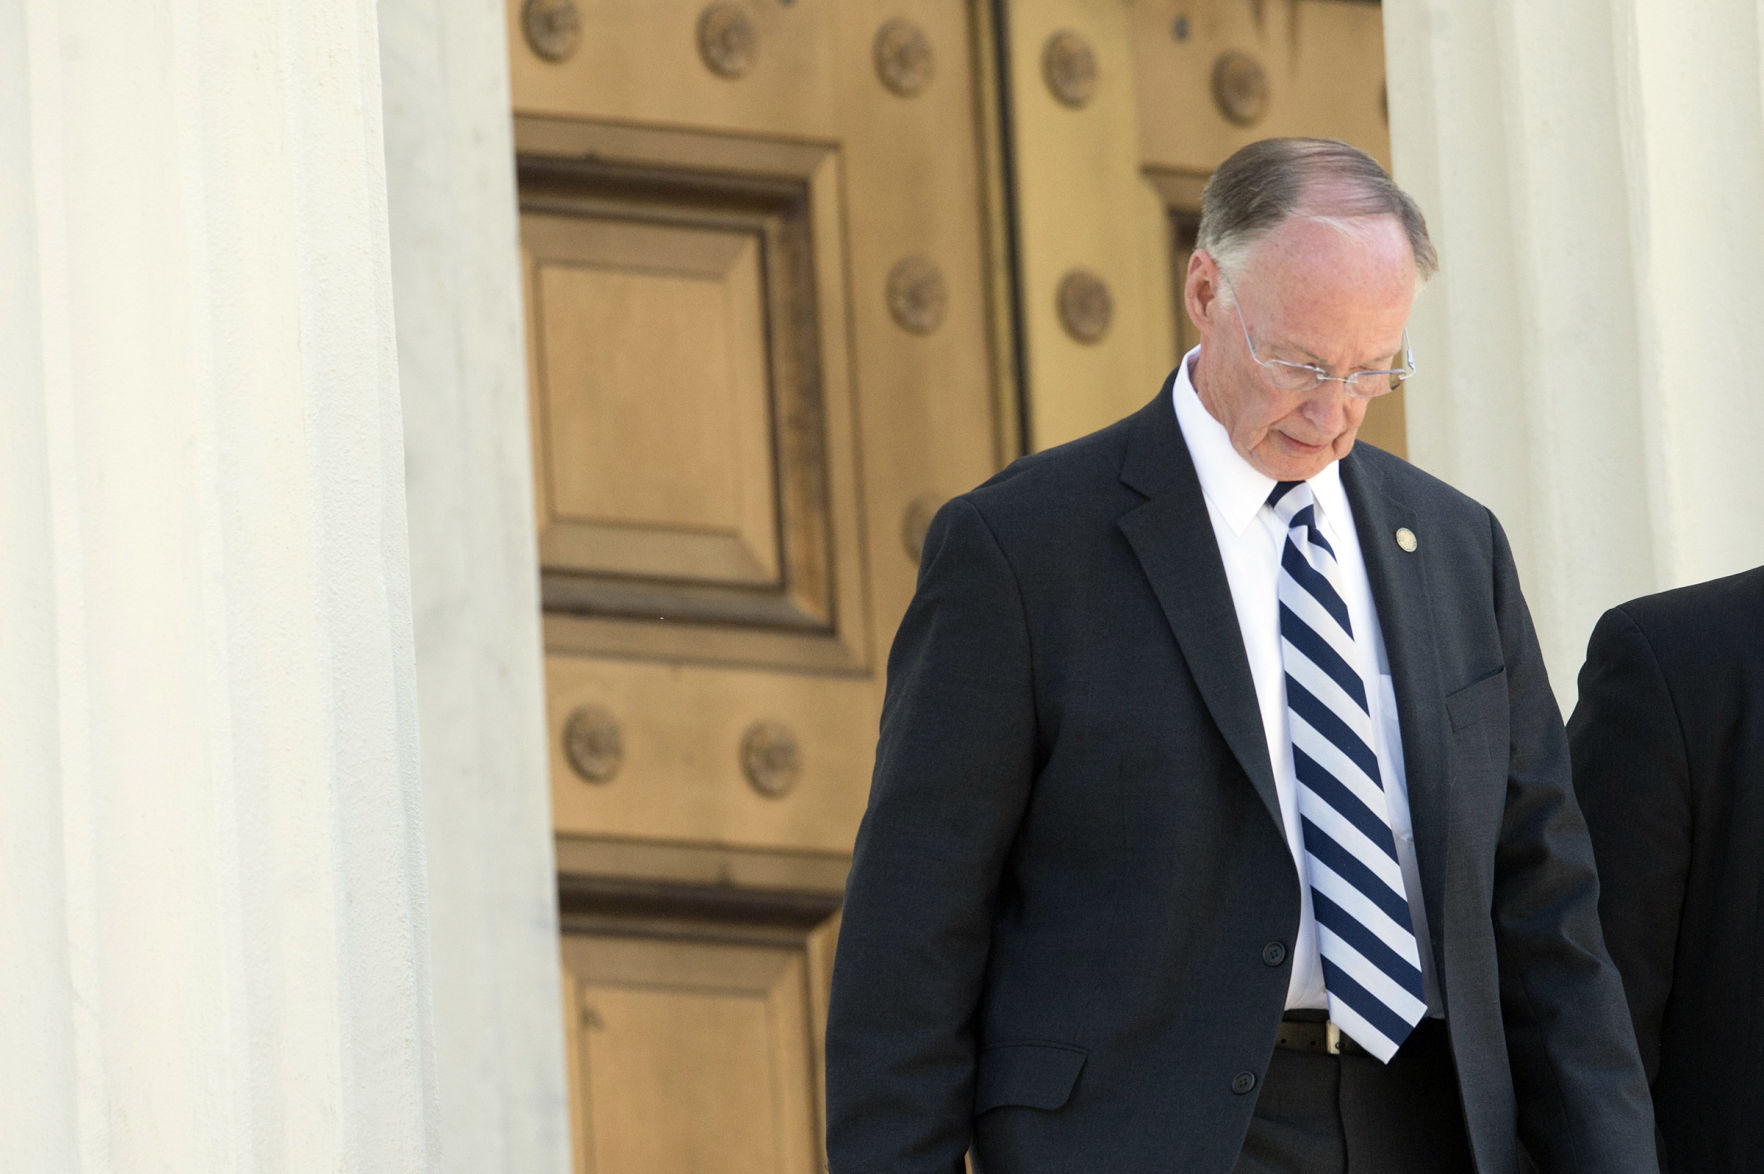 reason for resigning in resignation letter%0A Alabama Governor